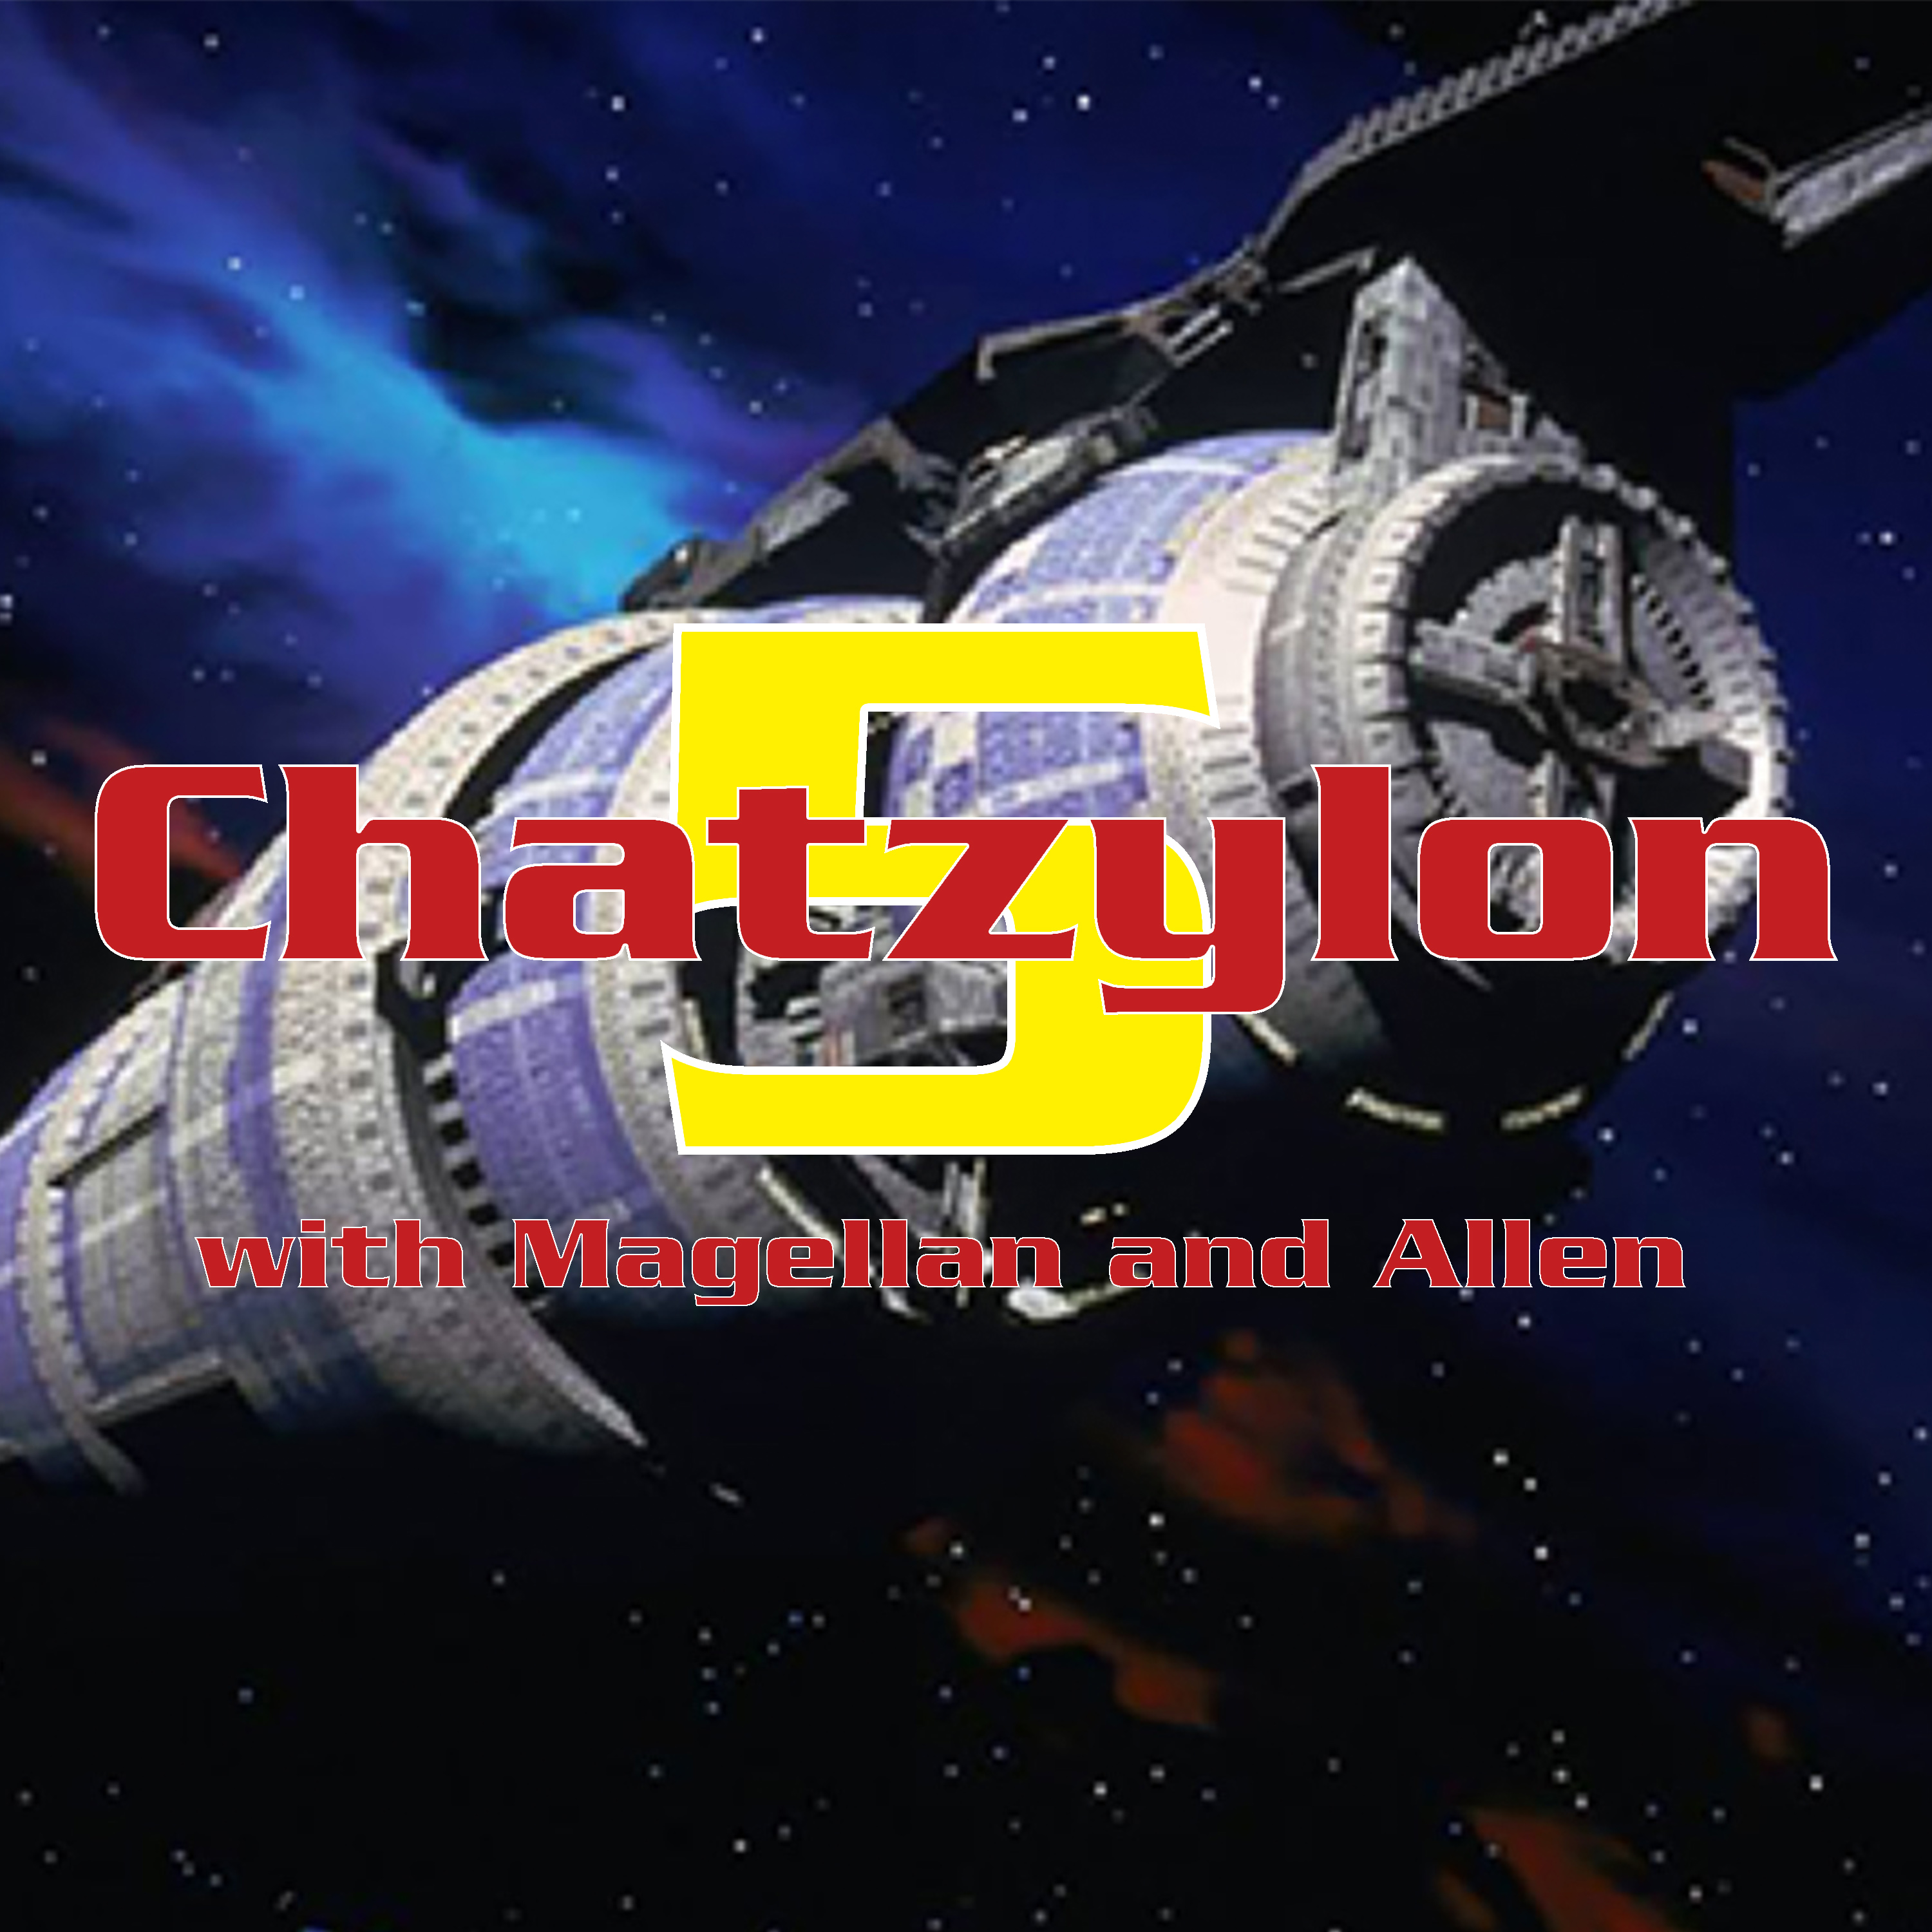 babylon 5 the coming of shadows